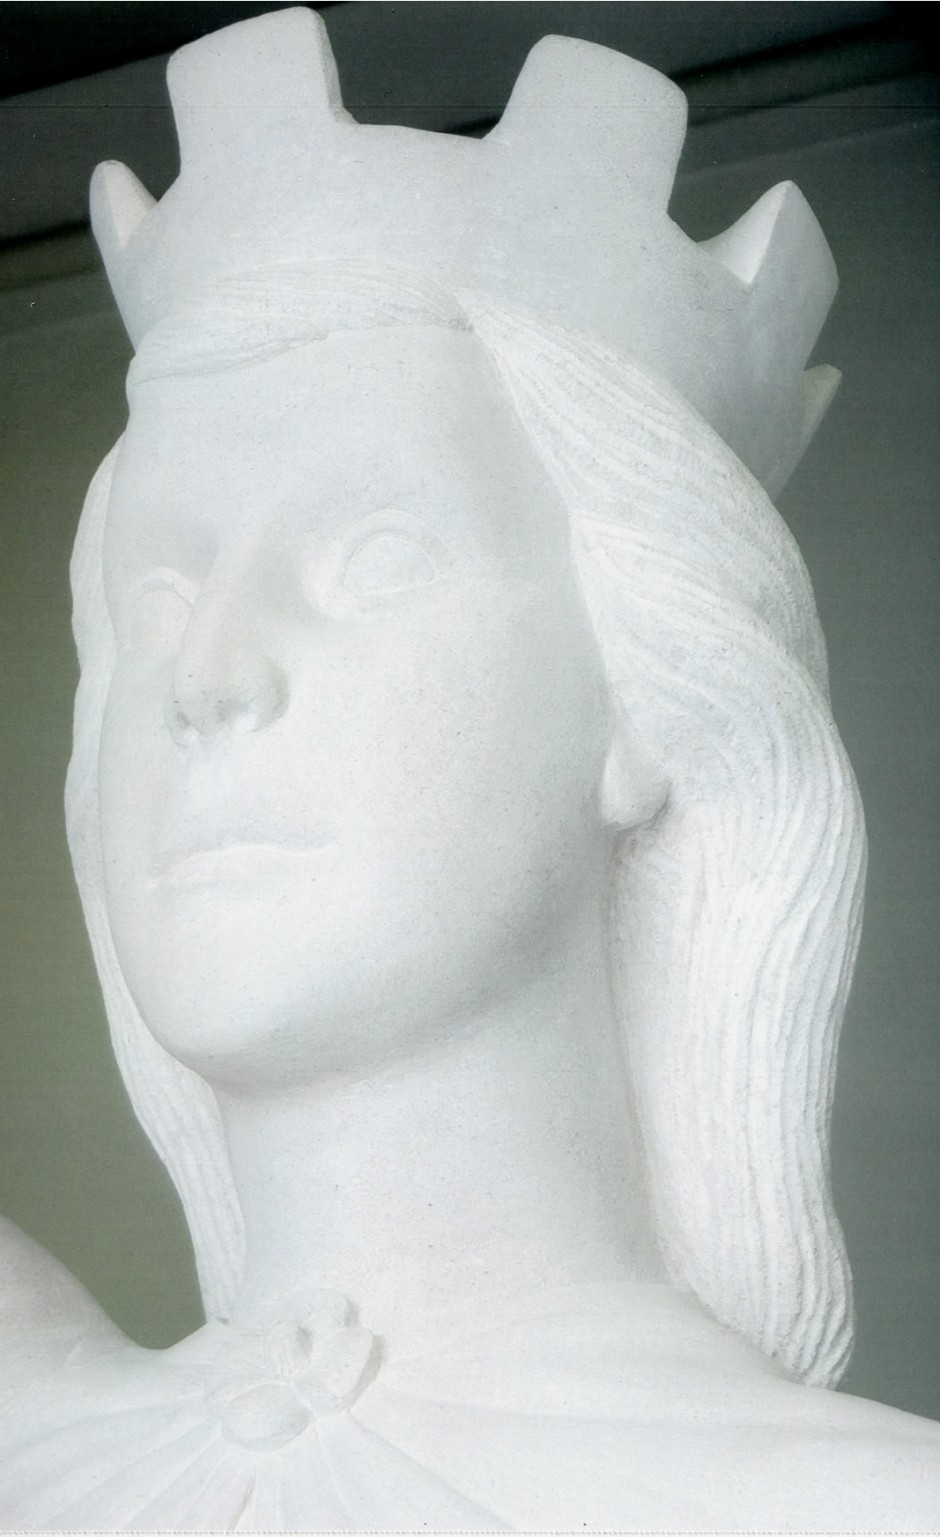 Close up of the statue head and face - statue head nike horndean